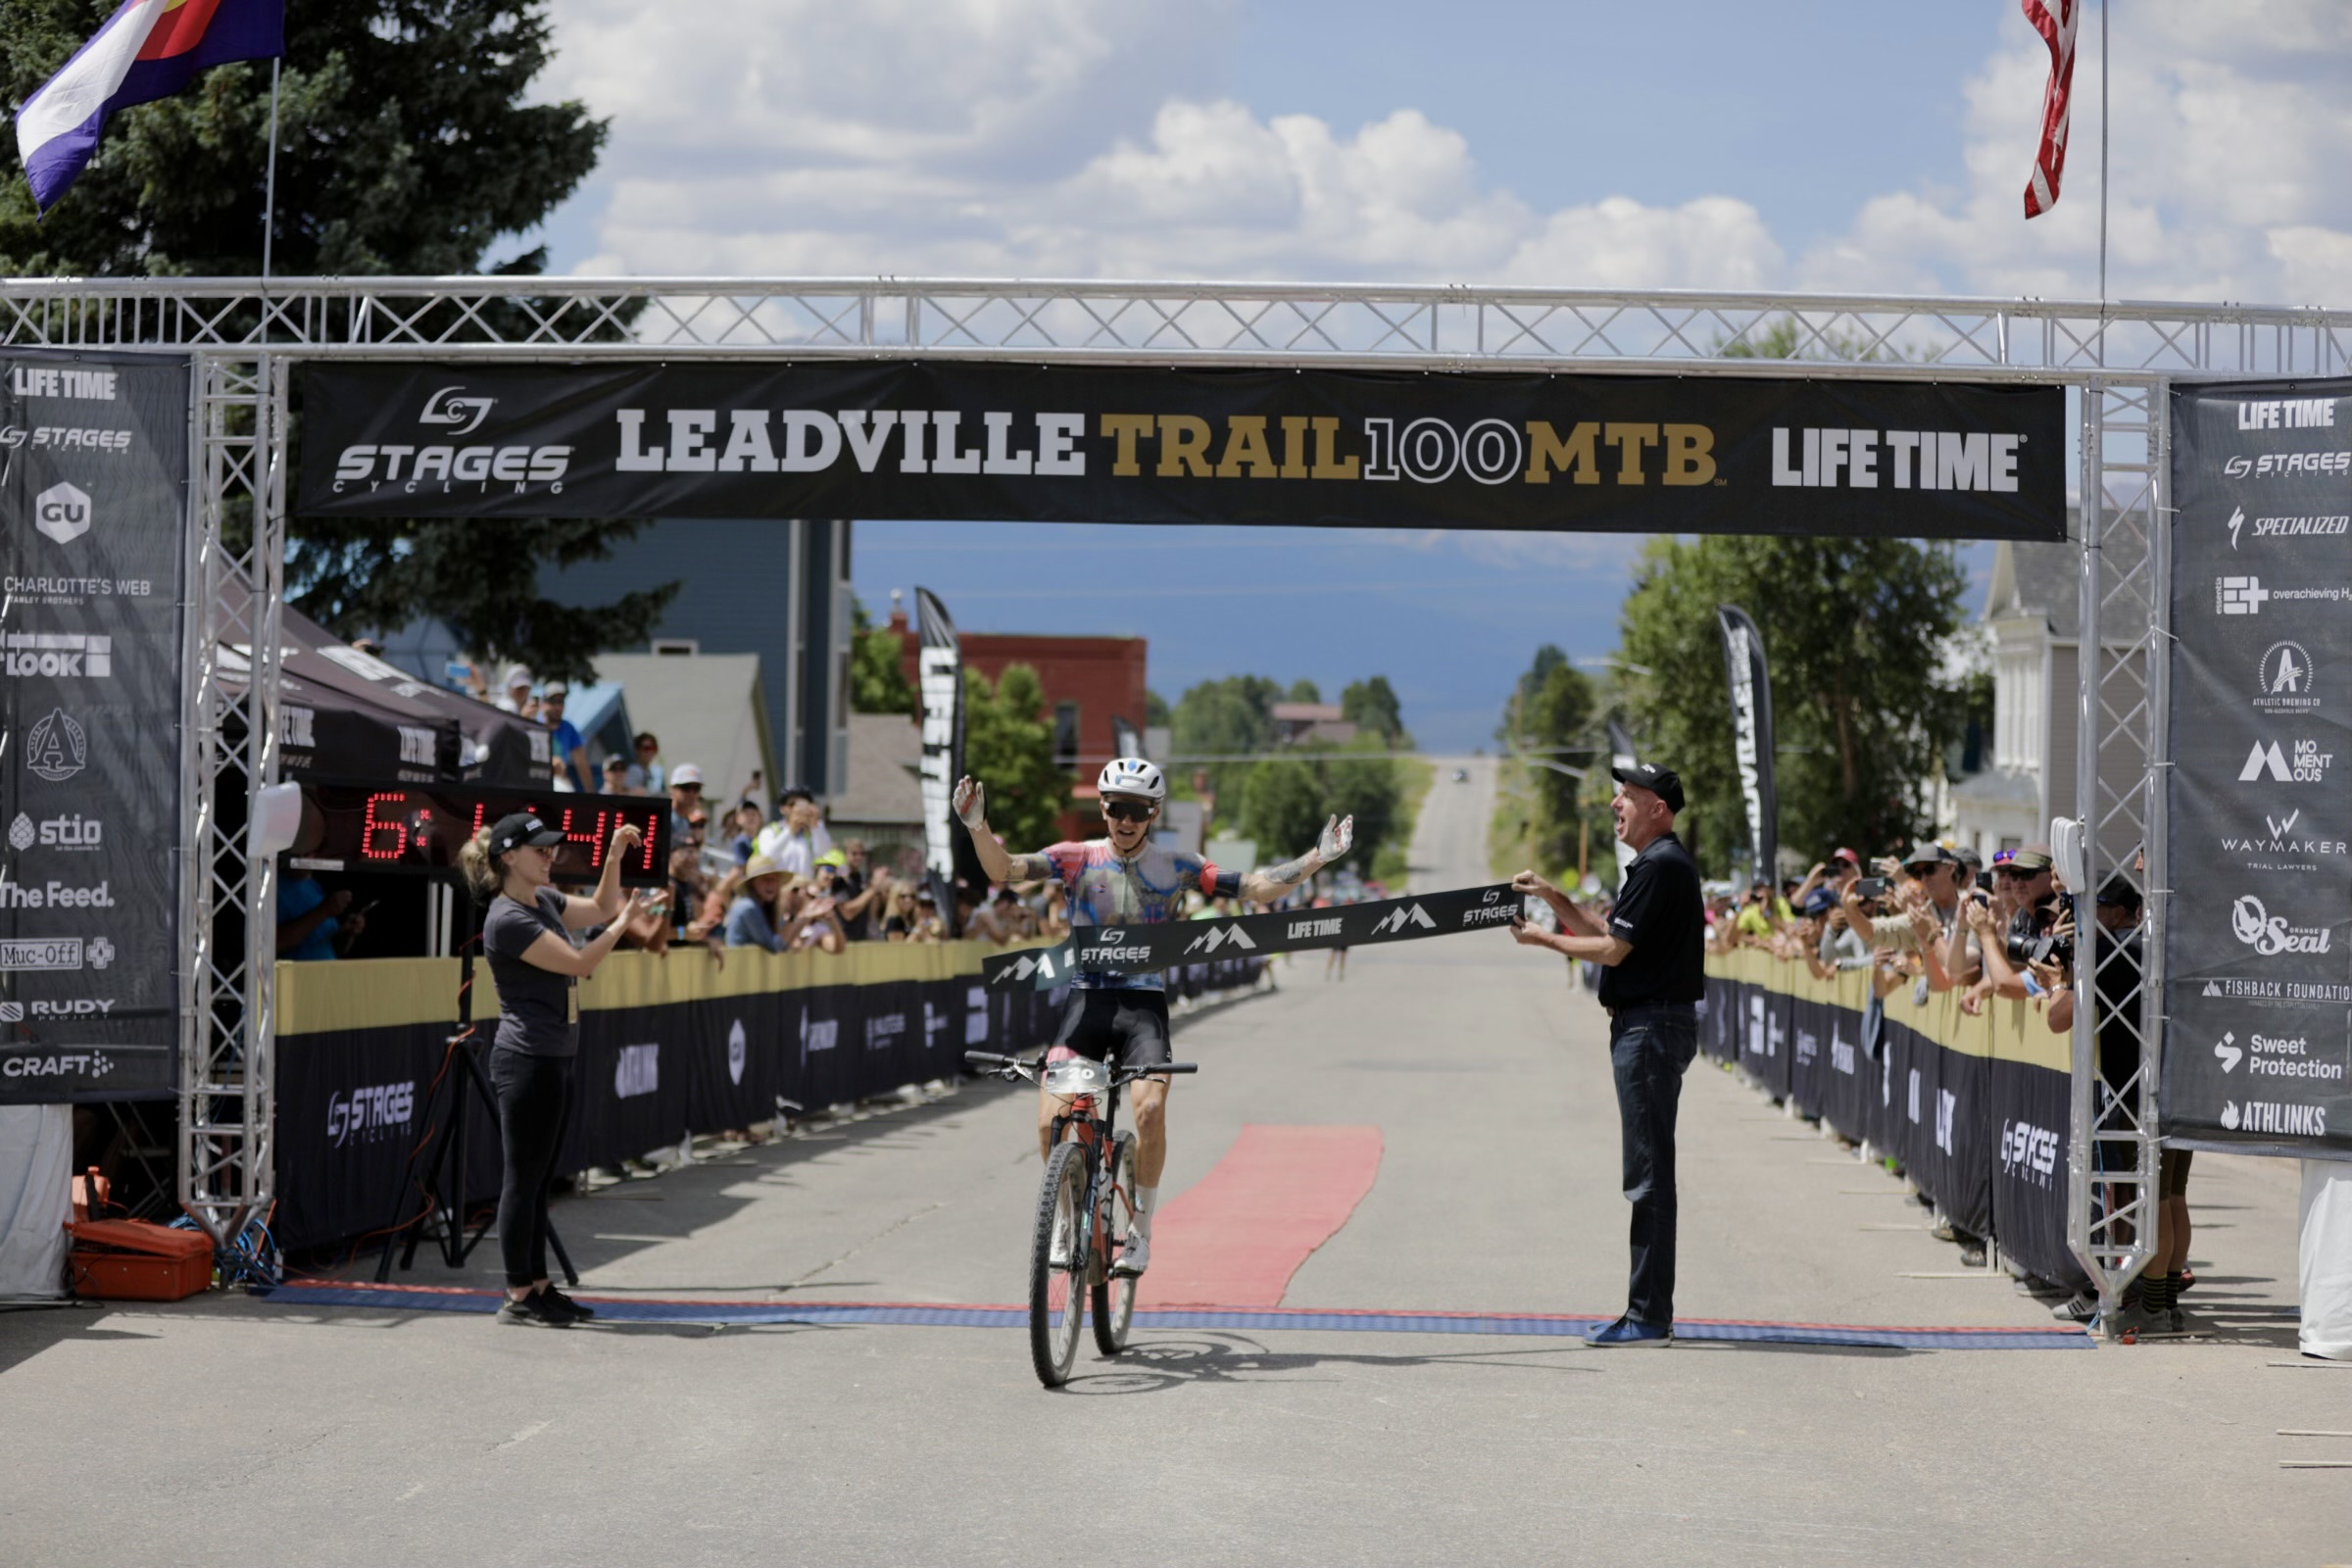 Keegan Swenson crosses the line to win the 2021 Leadville Trail 100. Photo courtesy Life Time